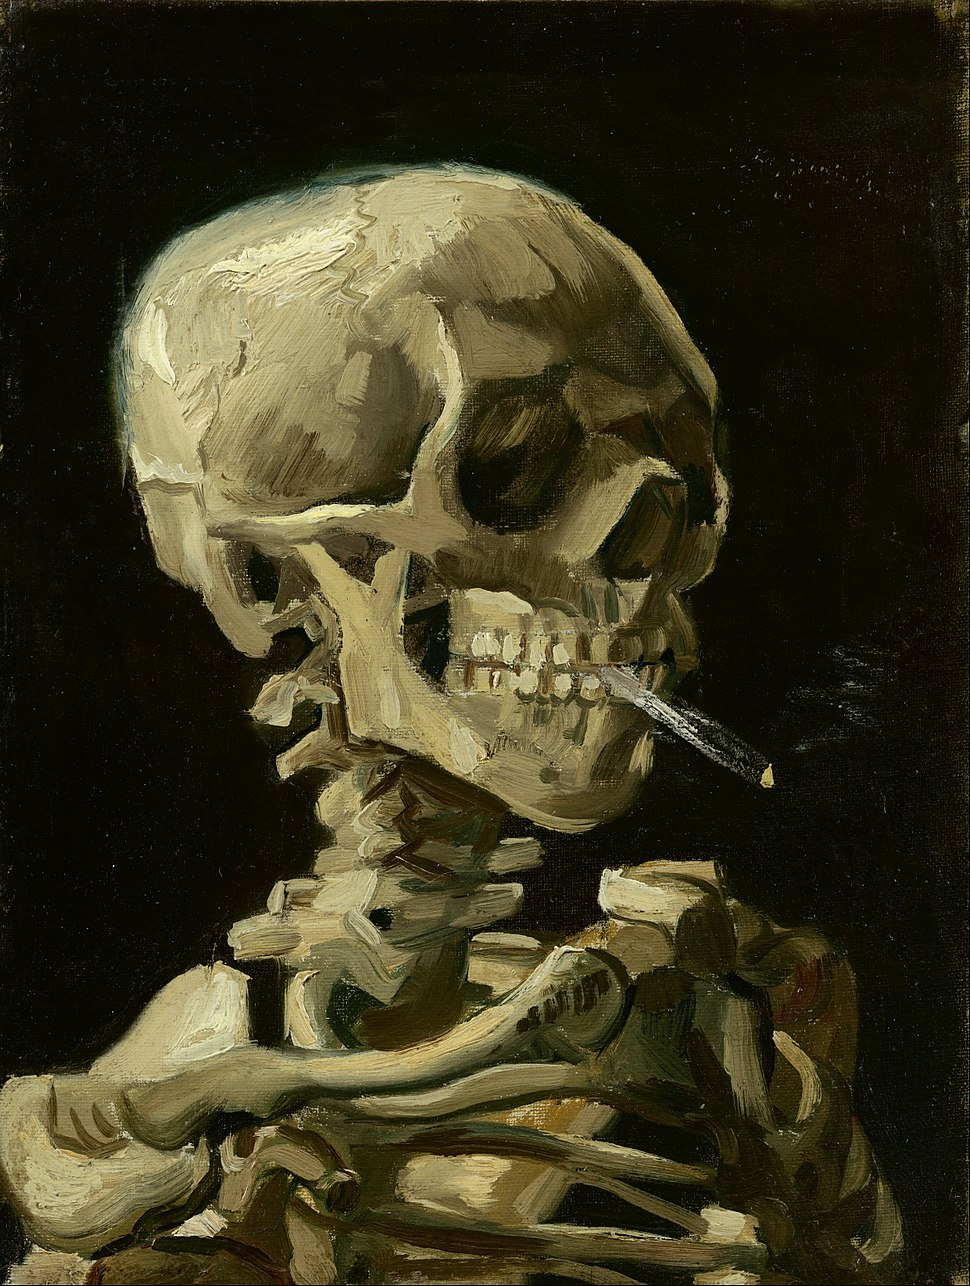 Vincent van Gogh - Head of a skeleton with a burning cigarette - Google Art Project